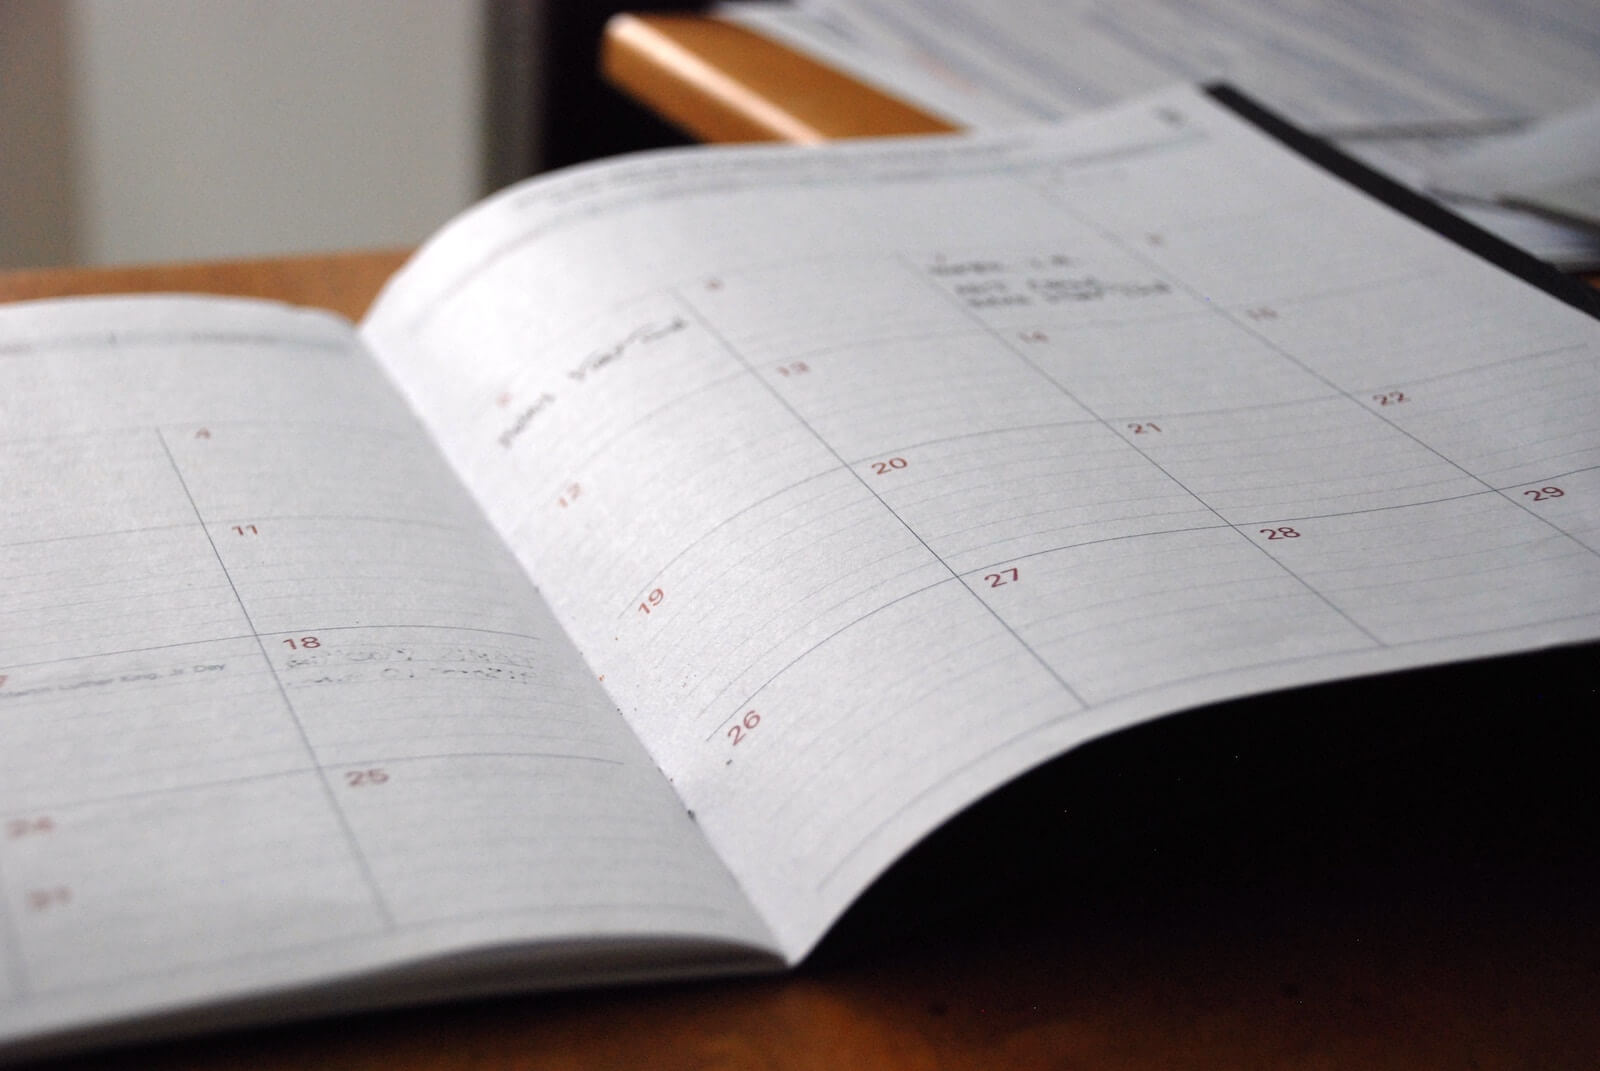 paper schedule book open with blank pages